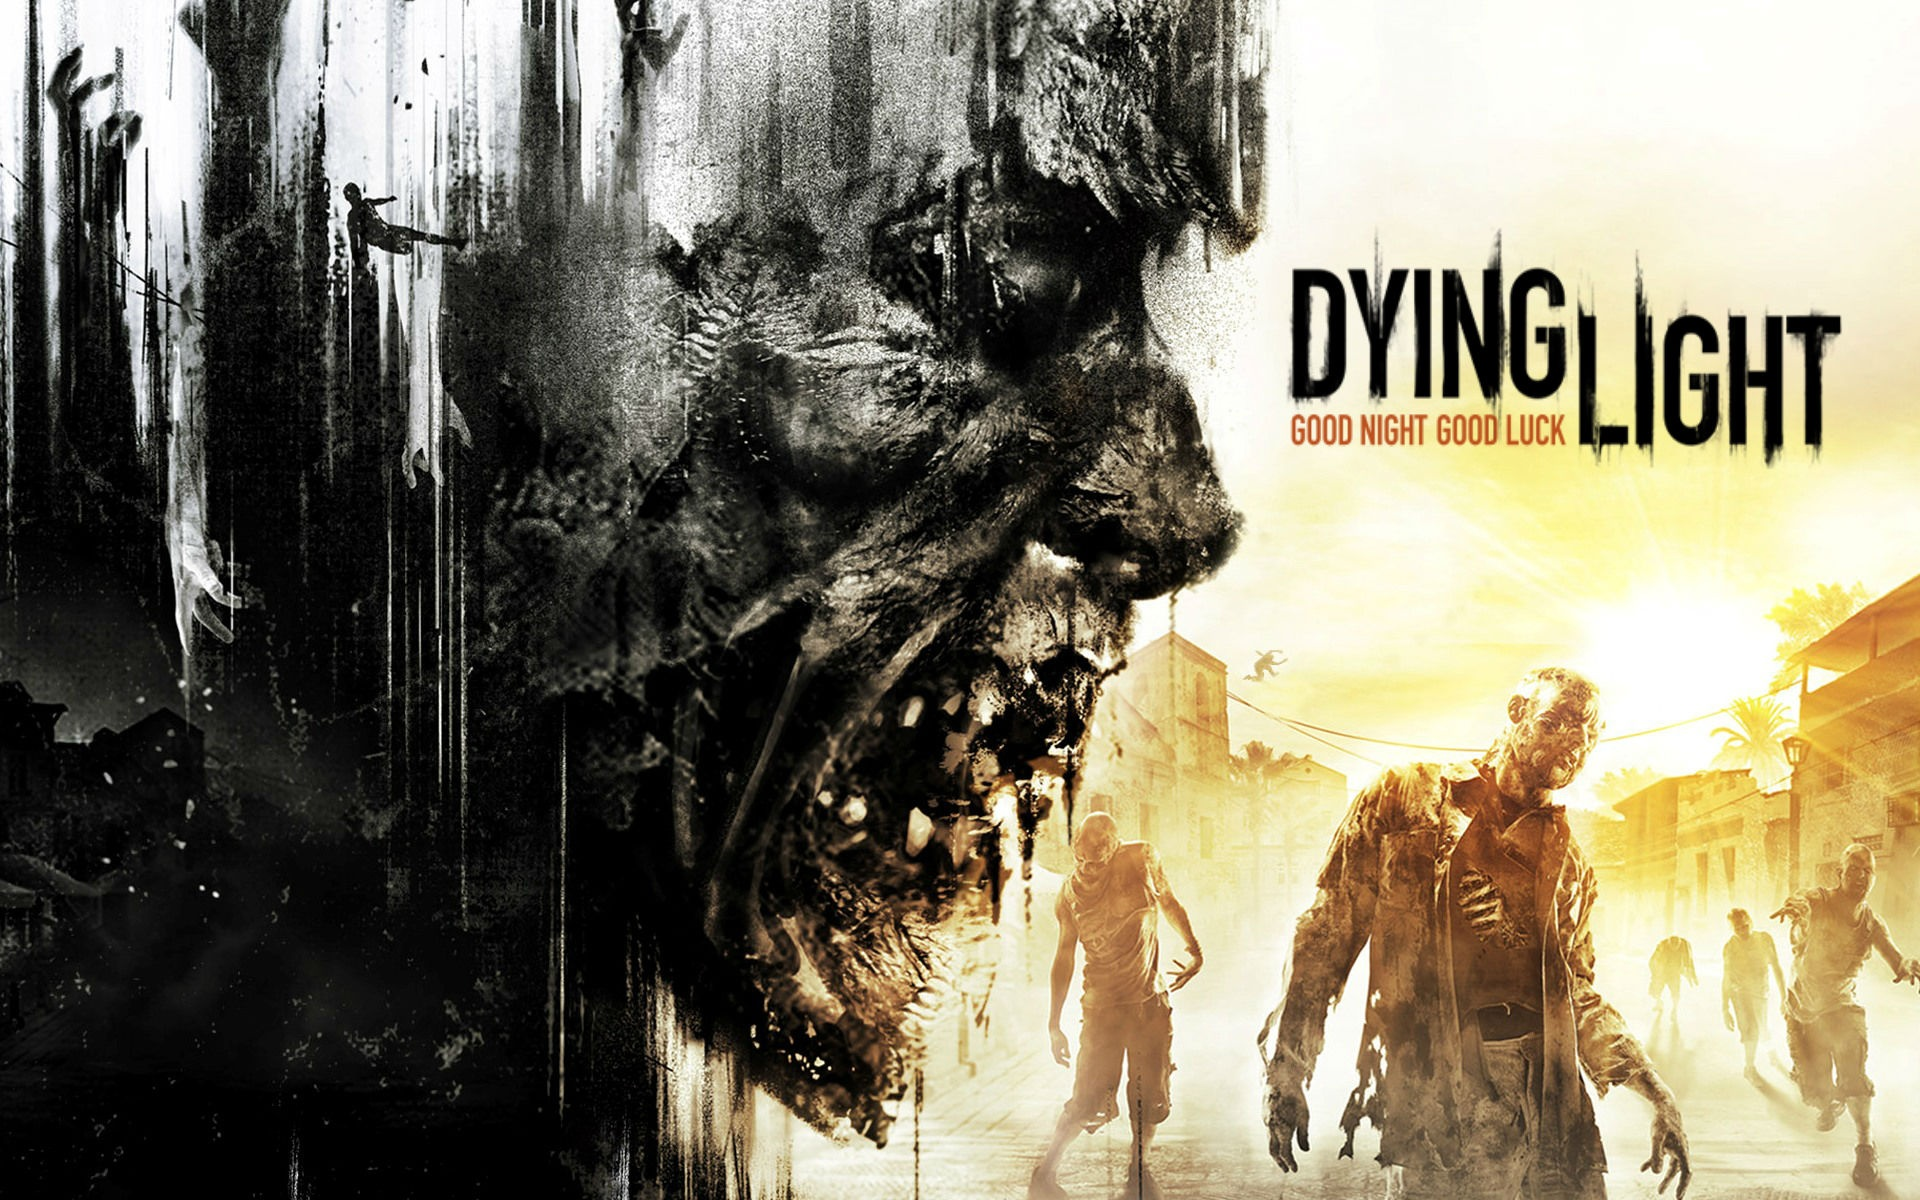 Dying Light 2014 Wallpapers   1920x1200   711717 1920x1200